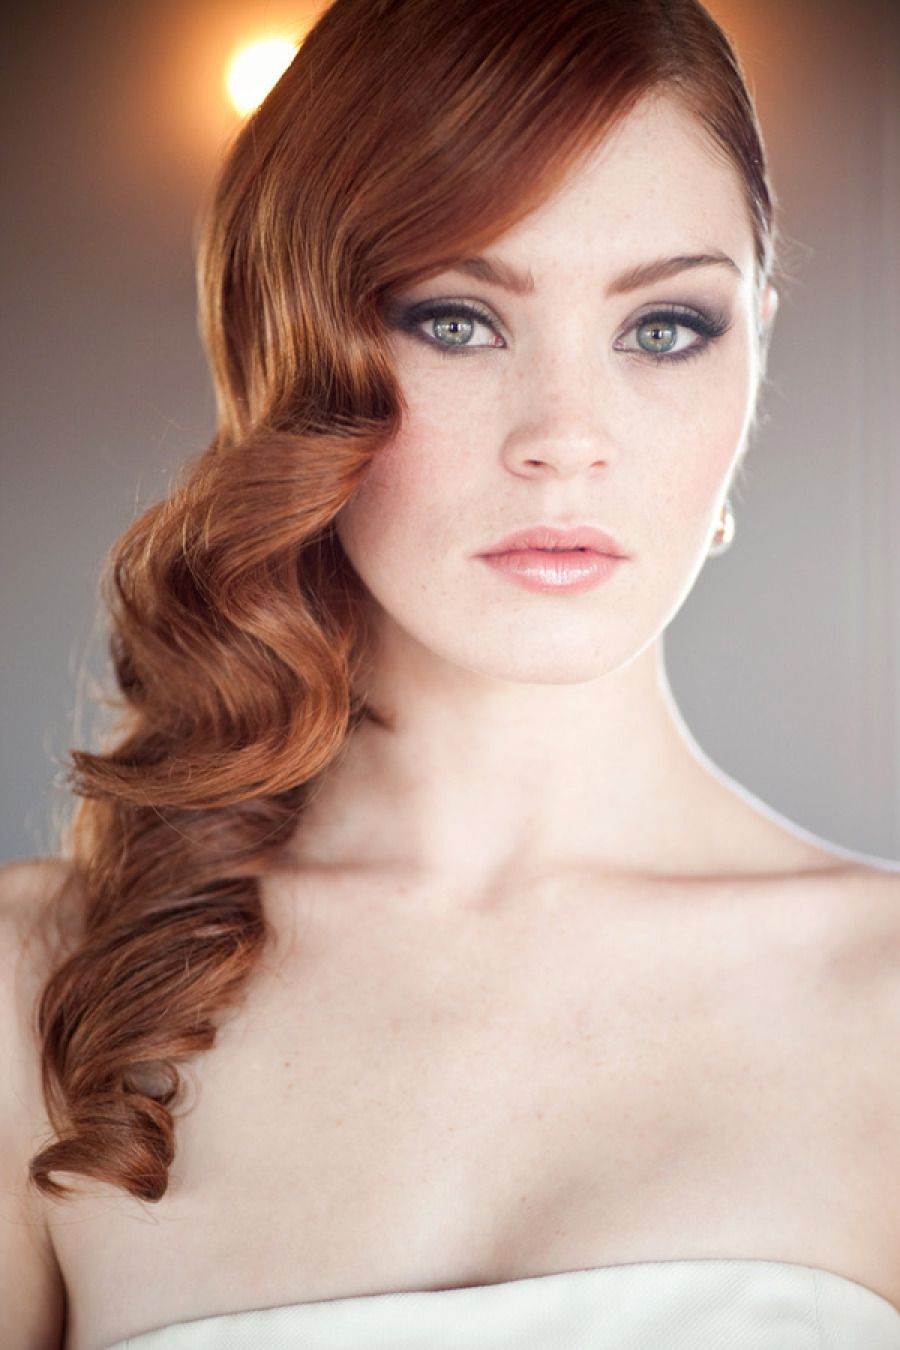 Makeup Tips For Redheads Isla Fisher Red Hair Natural Light And Bright Bridal Feel Beautiful With These